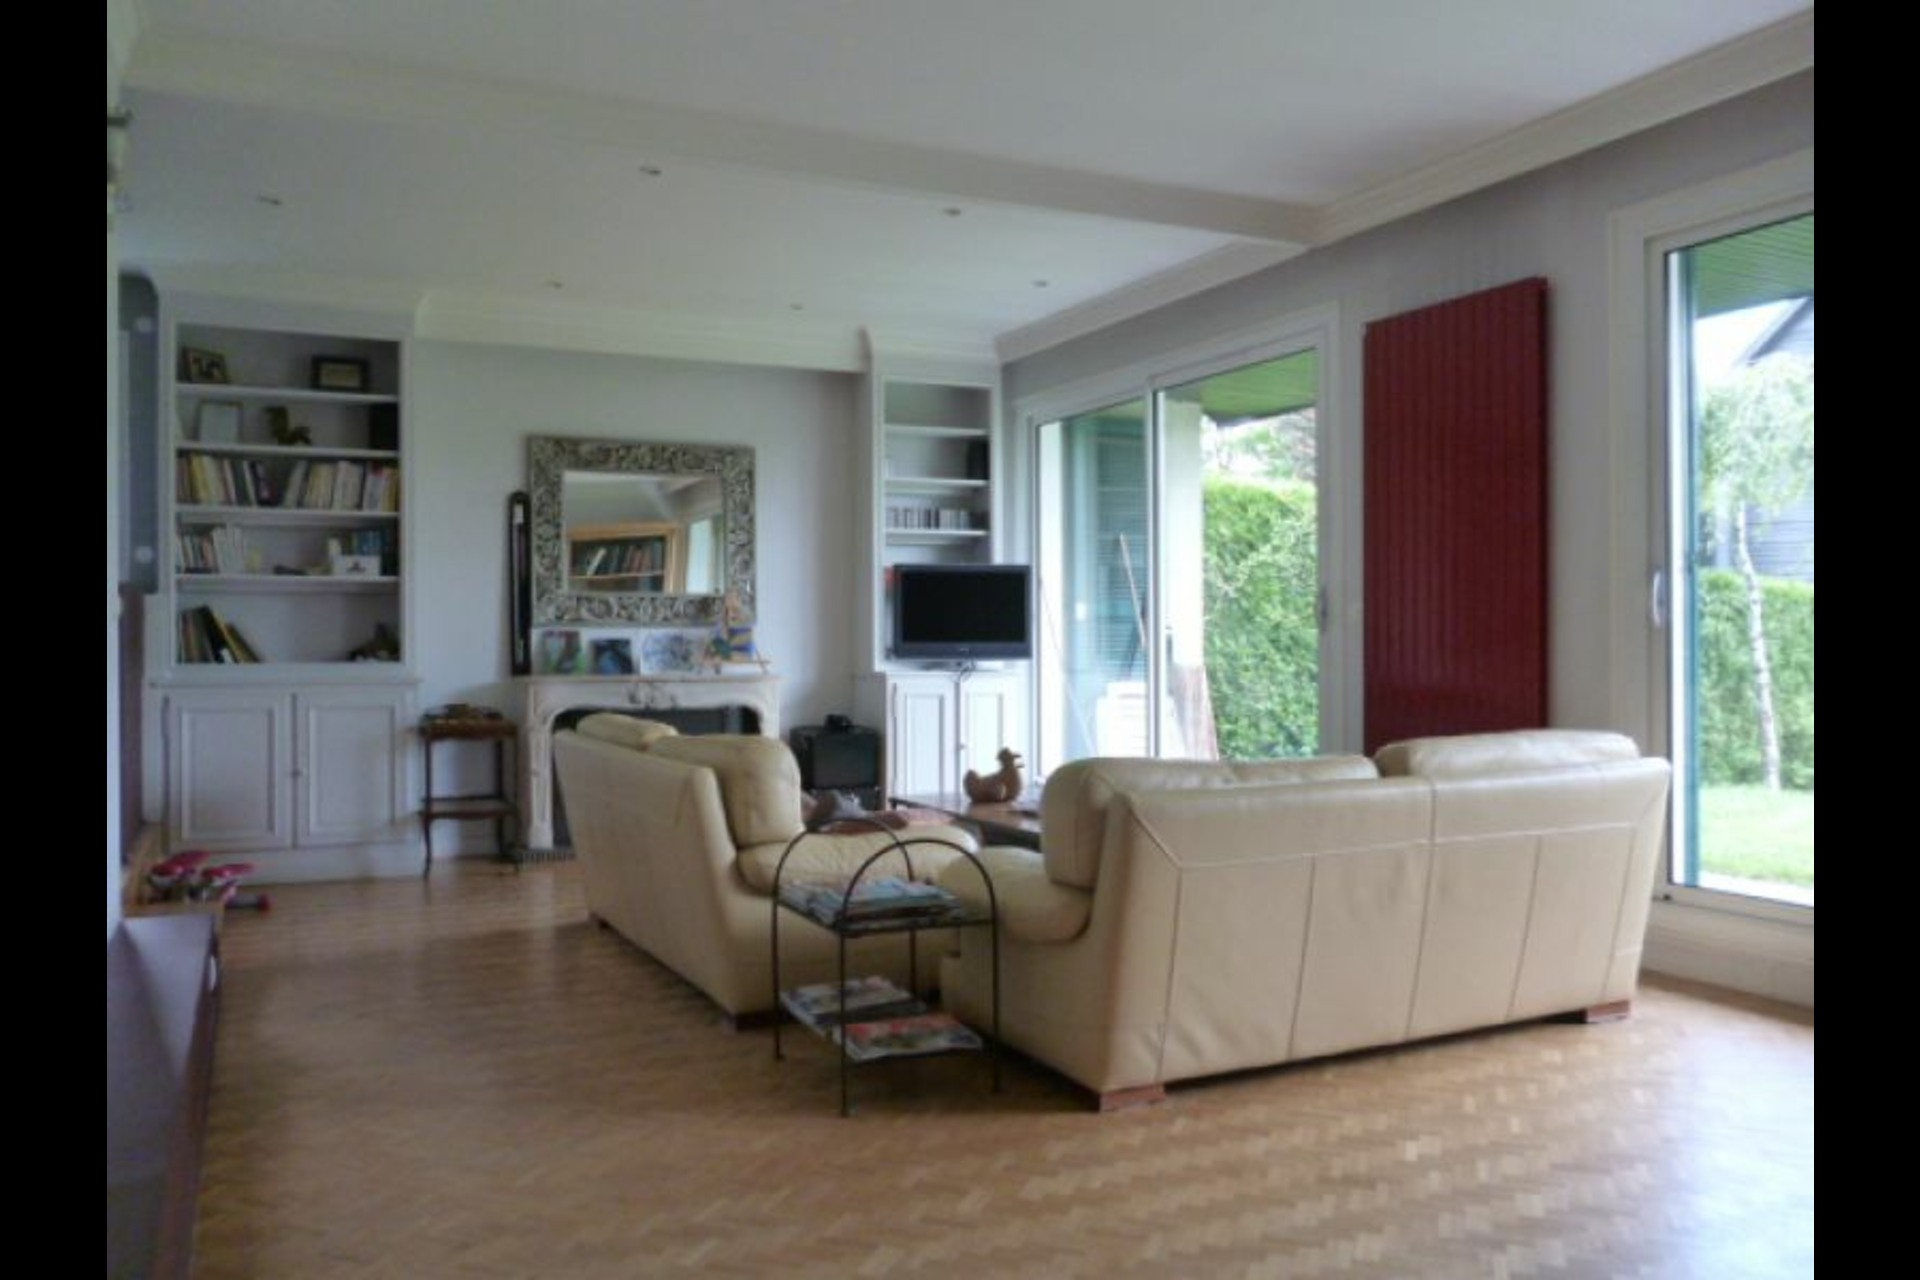 image 3 - House For rent chavenay - 8 rooms